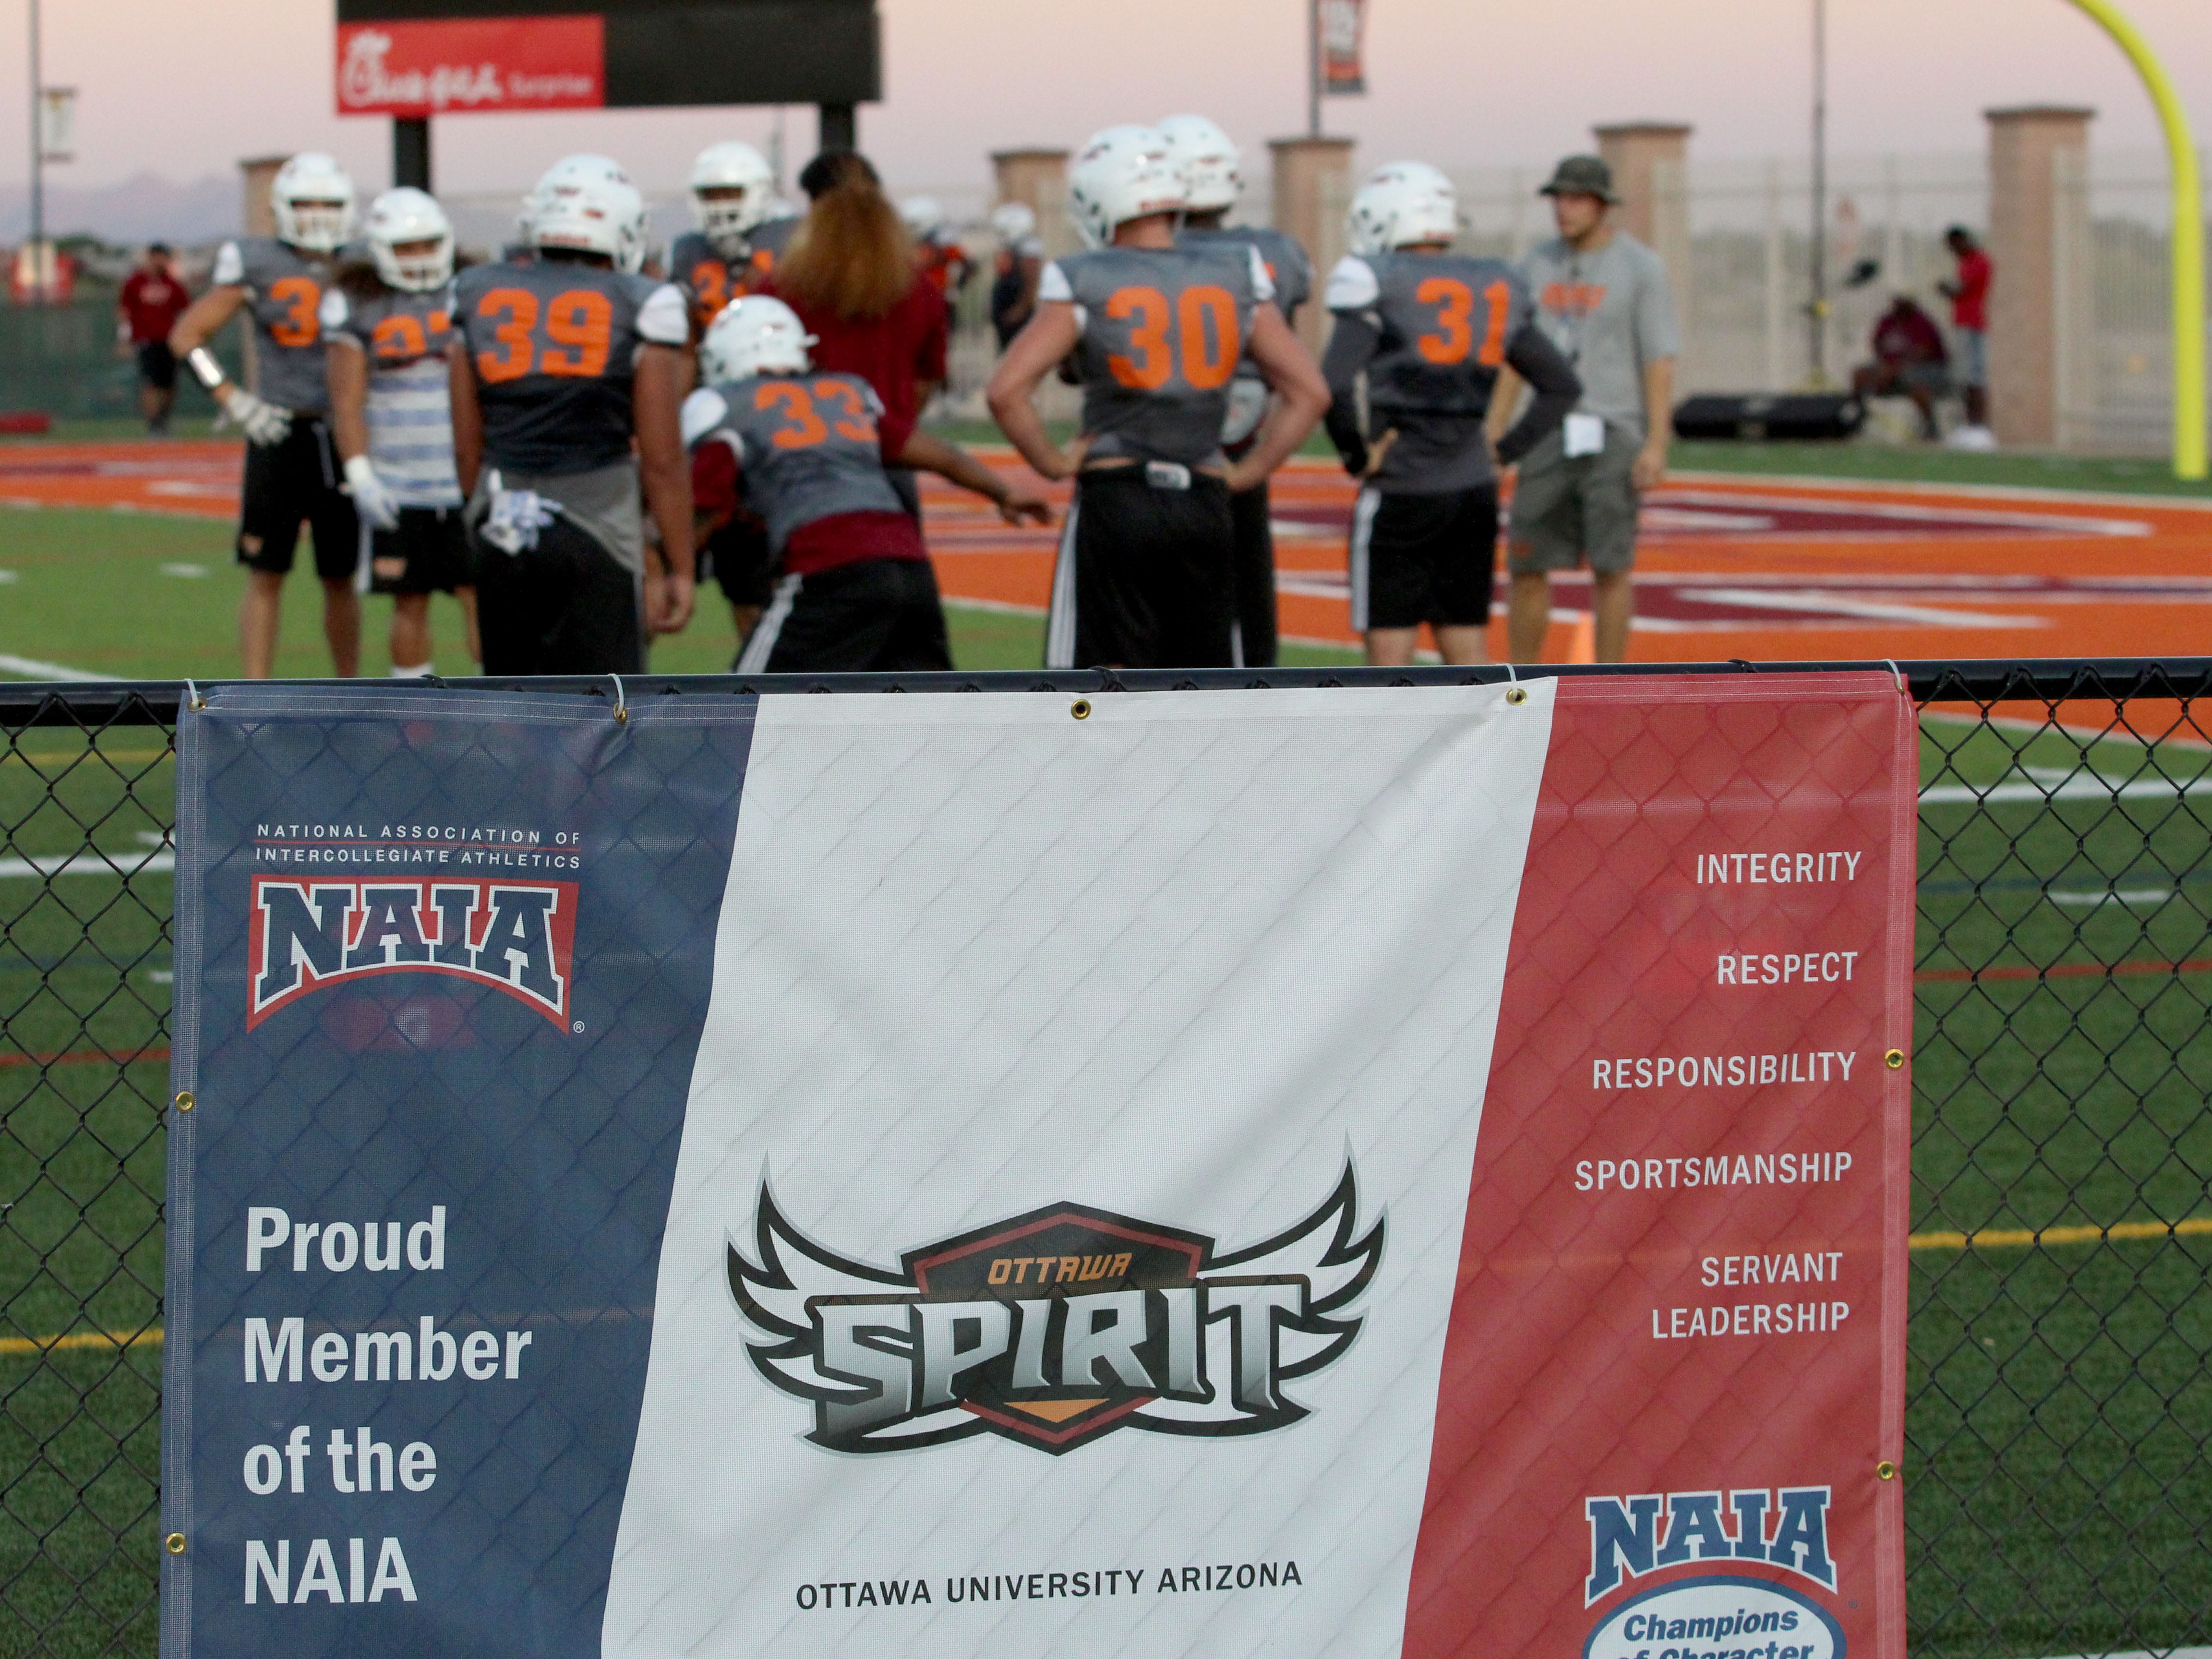 OUAZ hangs sign for inaugural season in NAIA on Tuesday night in Surprise on Sept. 11, 2018.